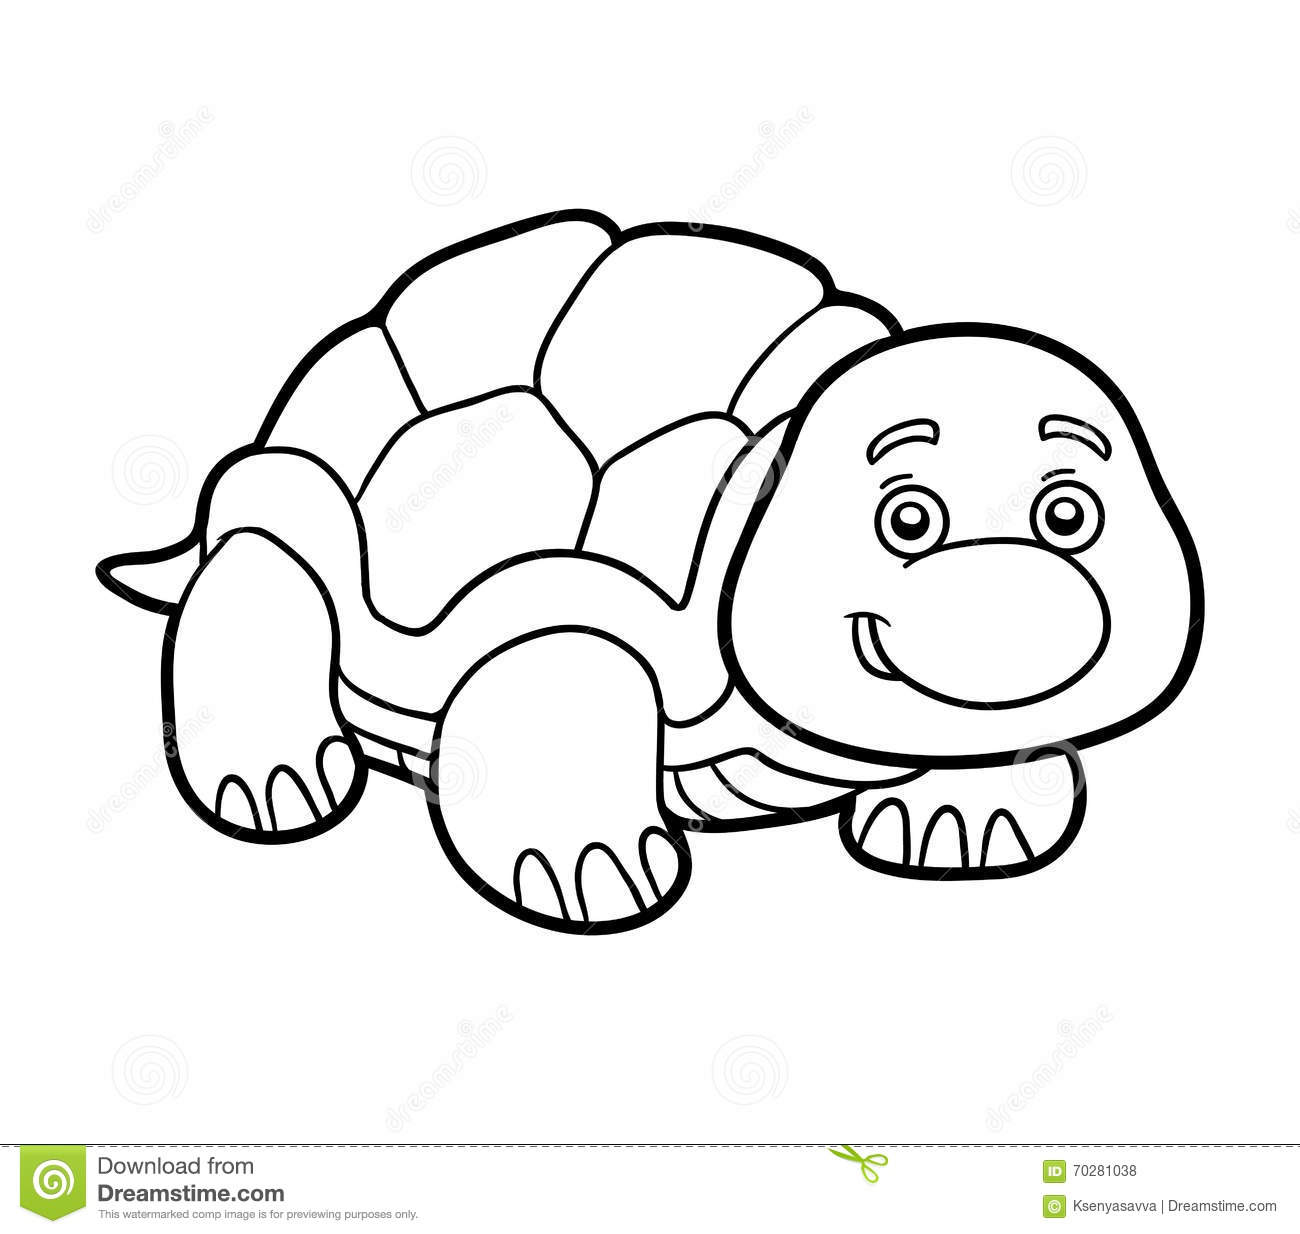 Coloring Book, Coloring Page (turtle) Stock Vector - Illustration of ...